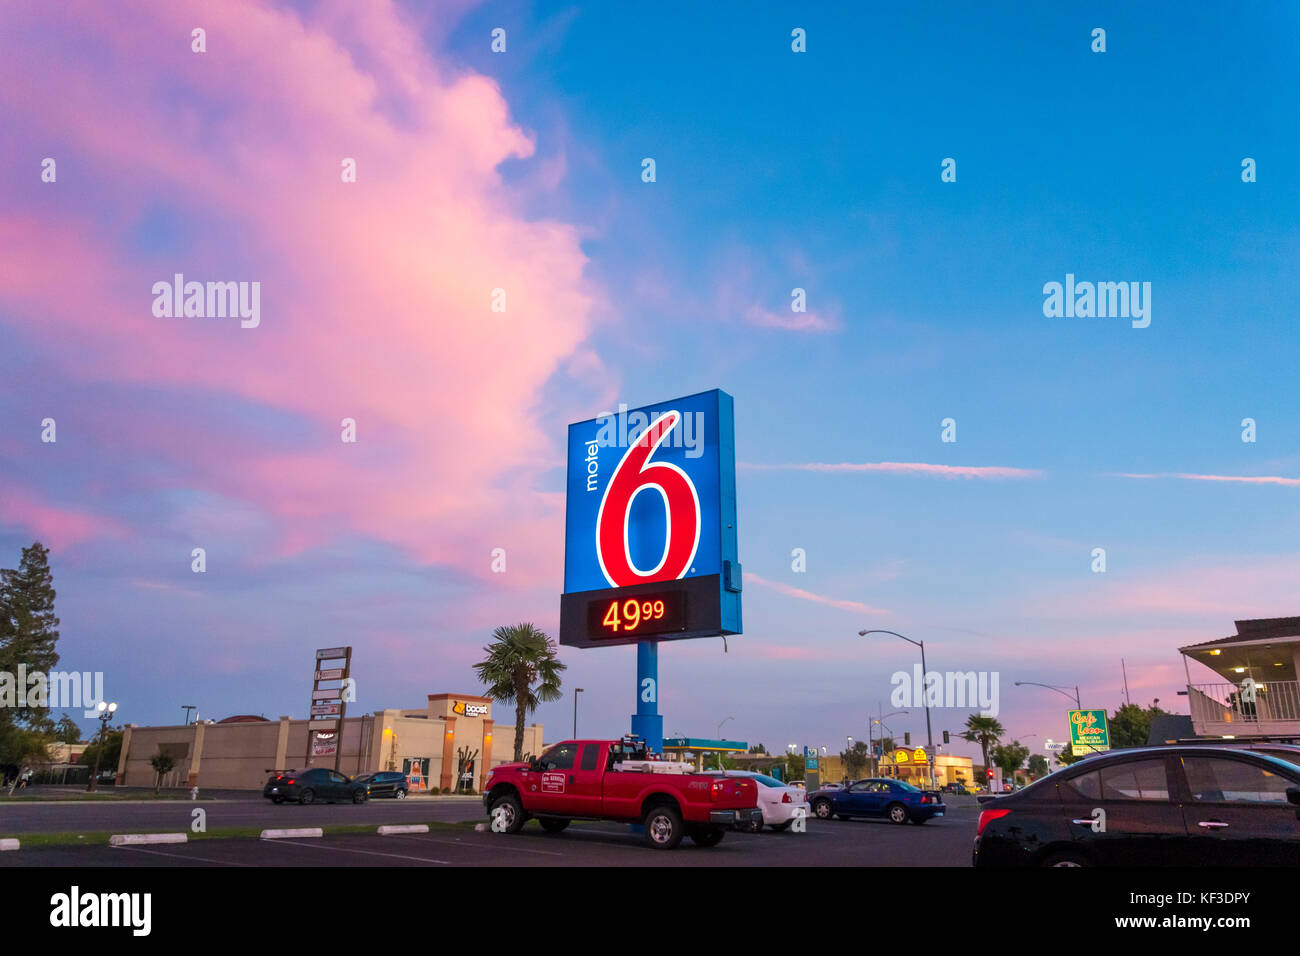 https://c7.alamy.com/comp/KF3DPY/motel-6-sign-with-low-price-of-4999-in-fresno-ca-at-sunset-KF3DPY.jpg